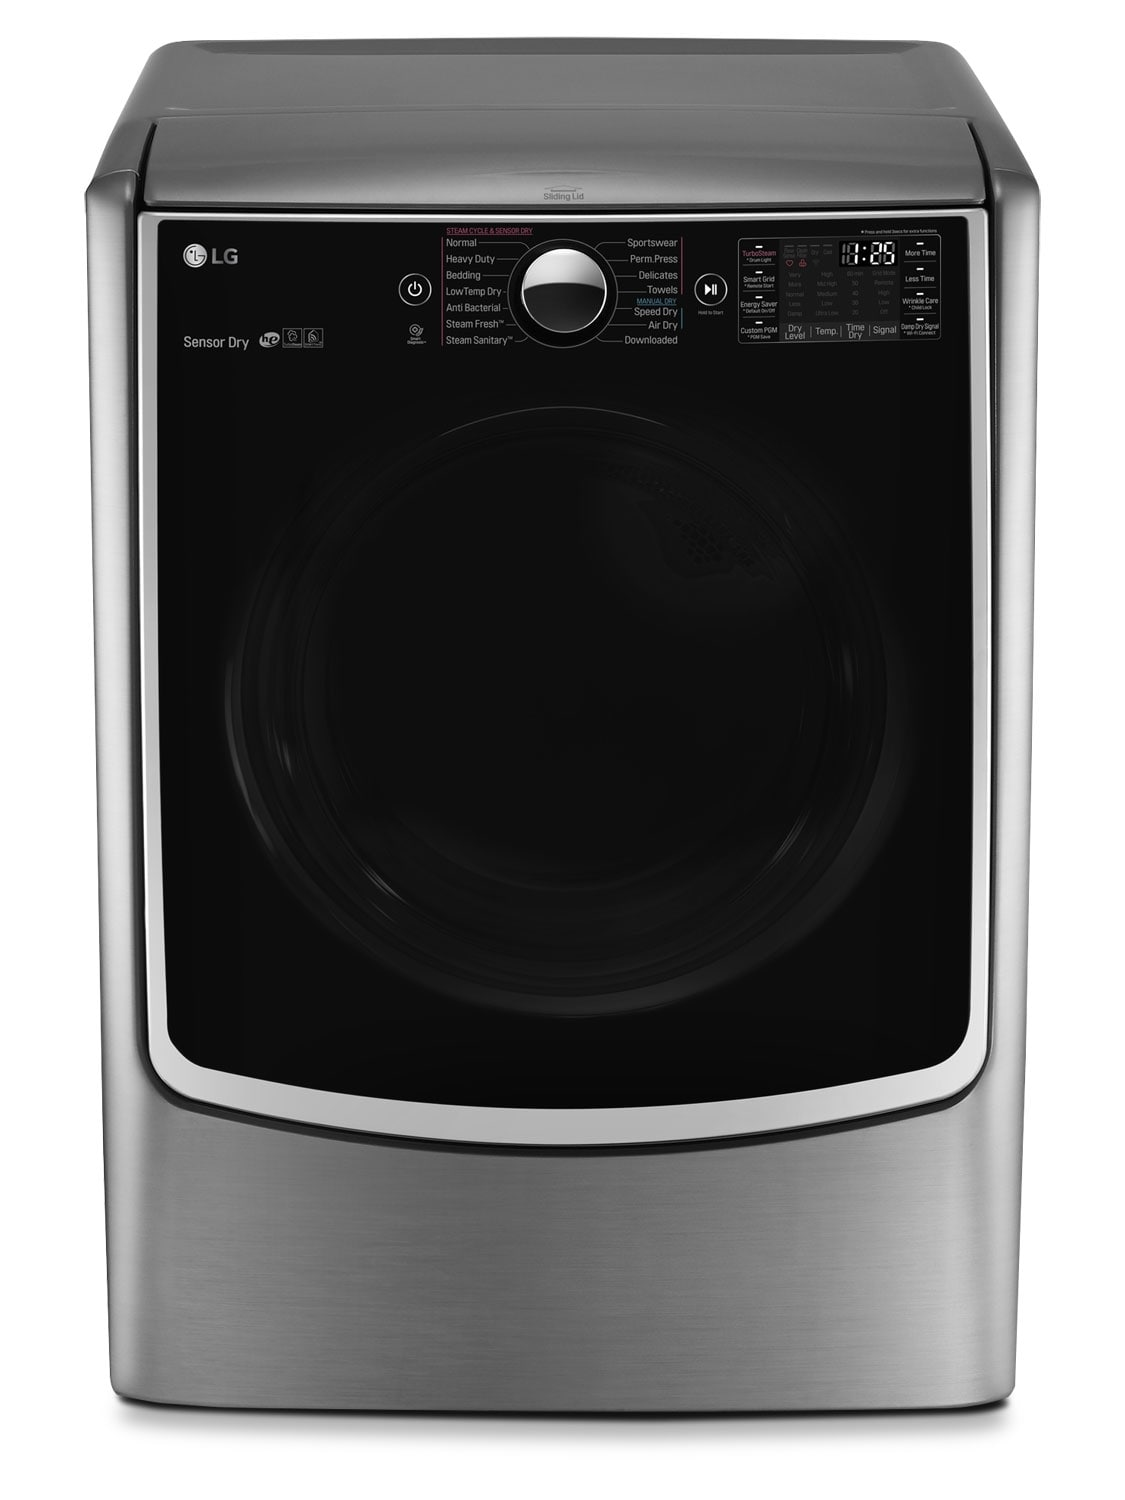 LG 7.4 Cu. Ft. Gas Dryer with TurboSteam™ and LoDecibel™ - Graphite Steel